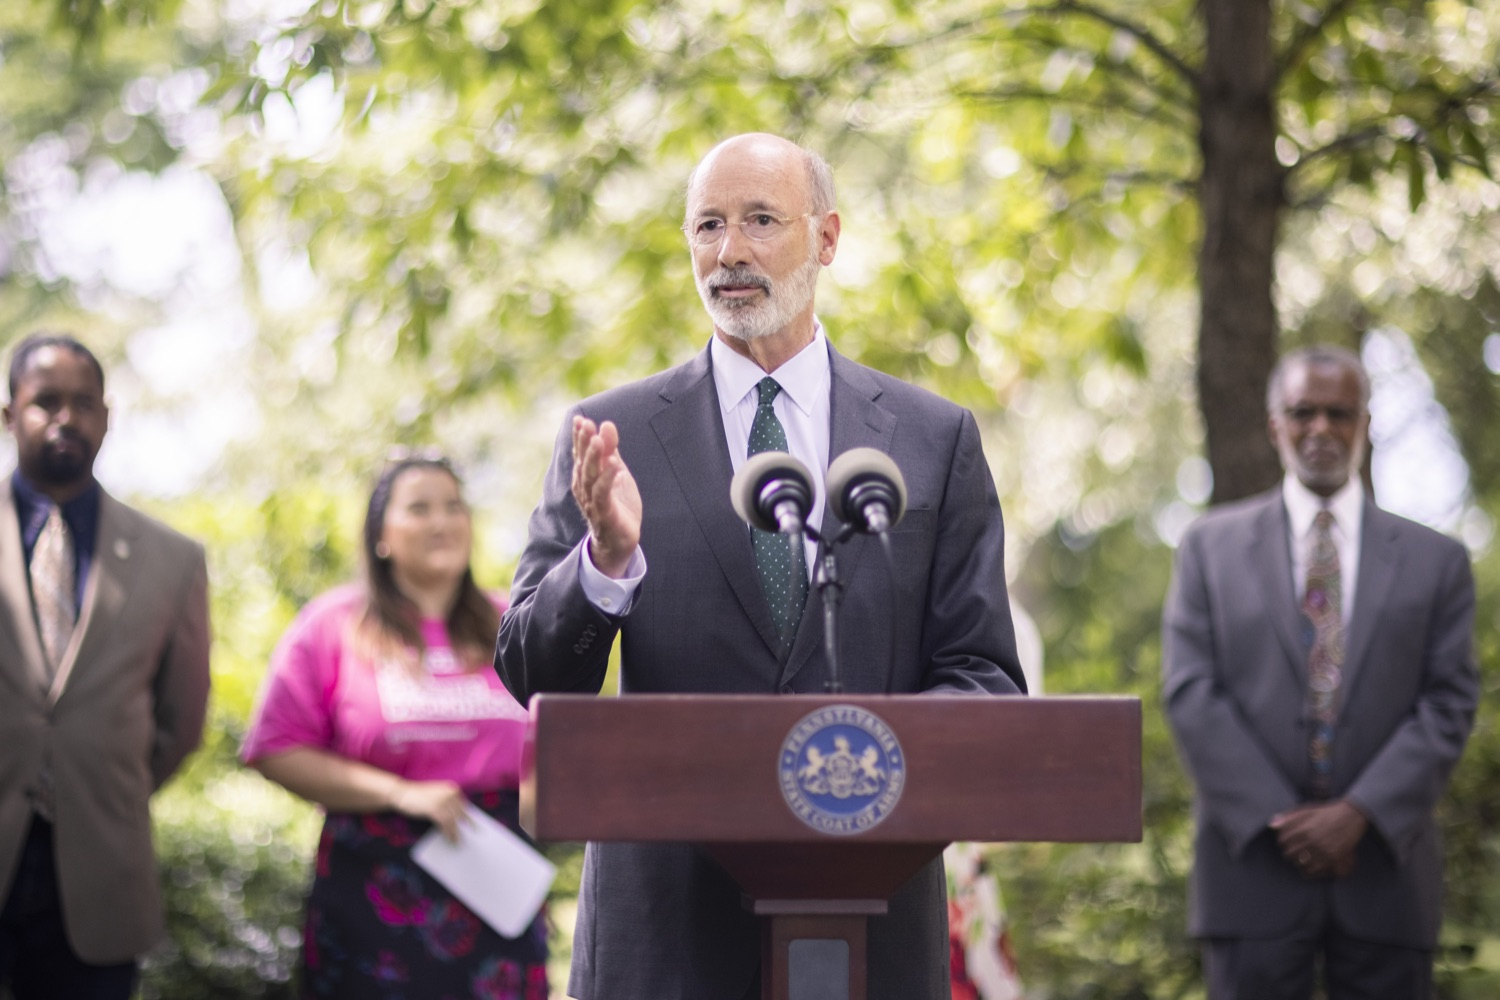 """<a href=""""https://filesource.wostreaming.net/commonwealthofpa/photo/18819_gov_reprodRights_dz_004.jpg"""" target=""""_blank"""">⇣Download Photo<br></a>Pennsylvania Governor Tom Wolf speaking with the press. Governor Wolf will discuss proposed anti-choice legislation that is moving through the House of Representatives and reaffirm that he will veto this damaging legislation.  JUNE 10, 2021 - PHILADELPHIA, PA"""